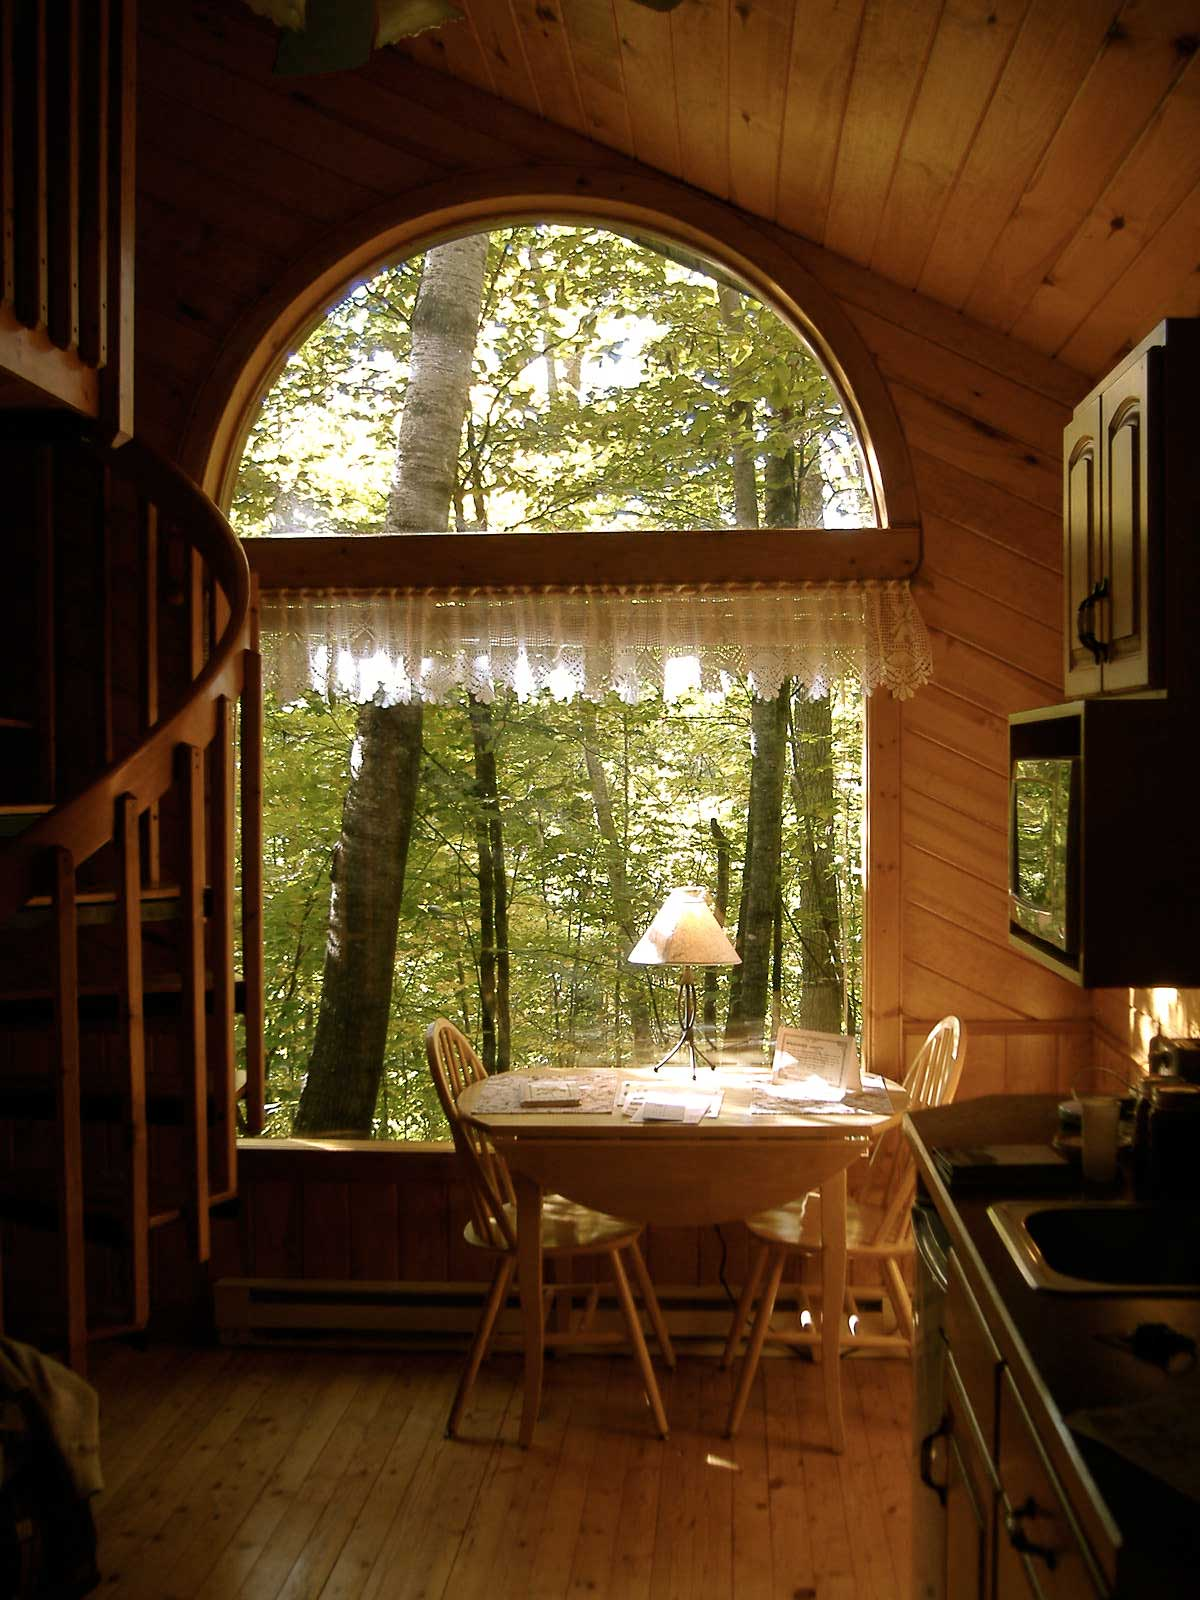 prayer cabins Bo Prayer Cabin Dinette view of the Wilderness